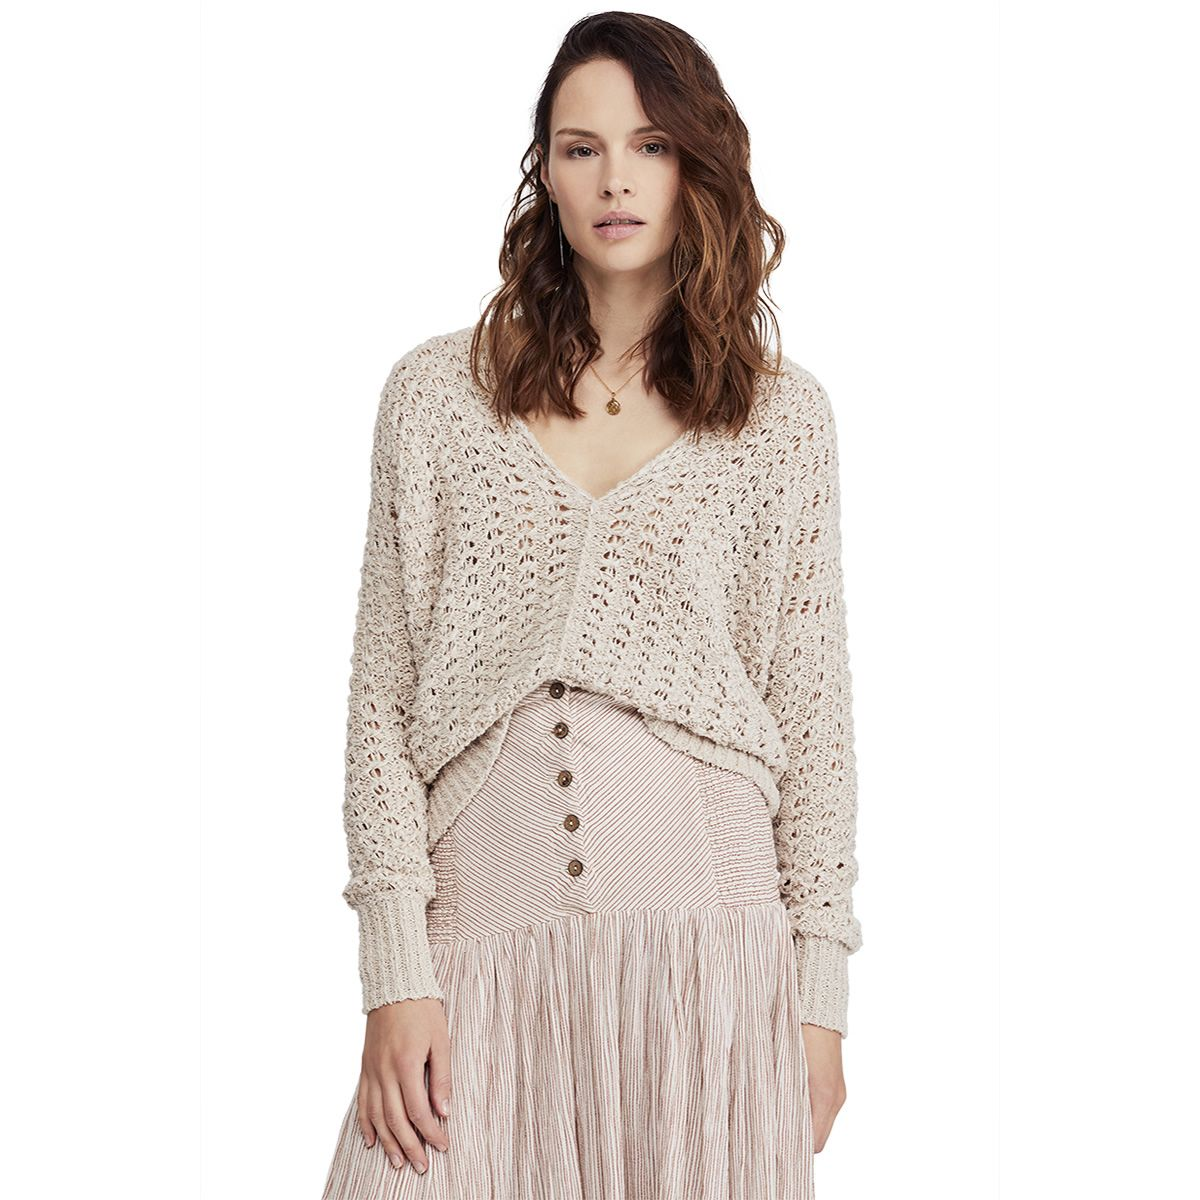 1f16aa35c5b Free People Clothing - Womens Apparel - Macy s